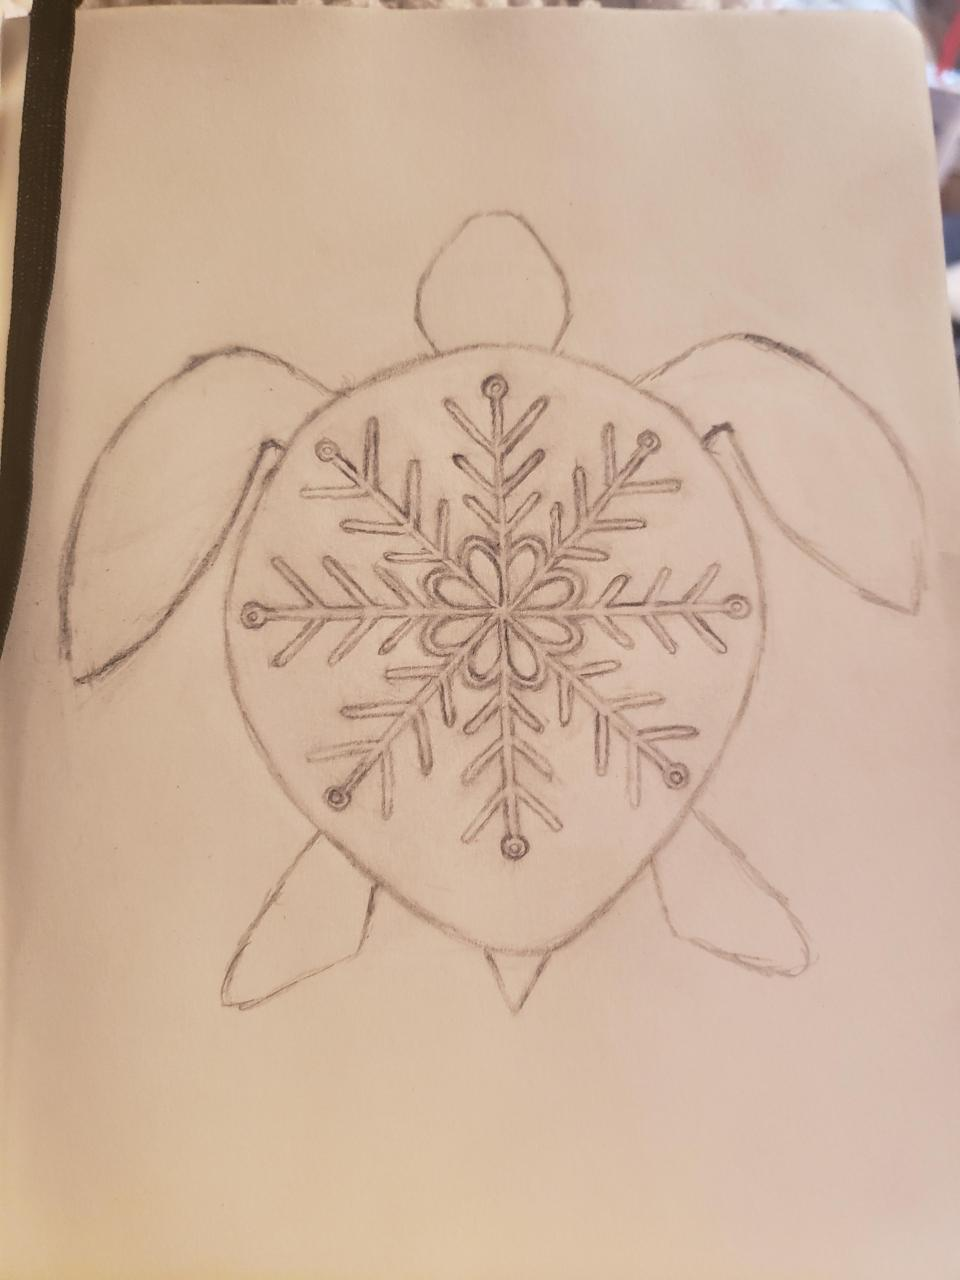 This is my snow turtle sketch! If anyone has advice on the sketch or wants to redo it in their style, I would love to see it! Also, where do you think this would look good as a tattoo?